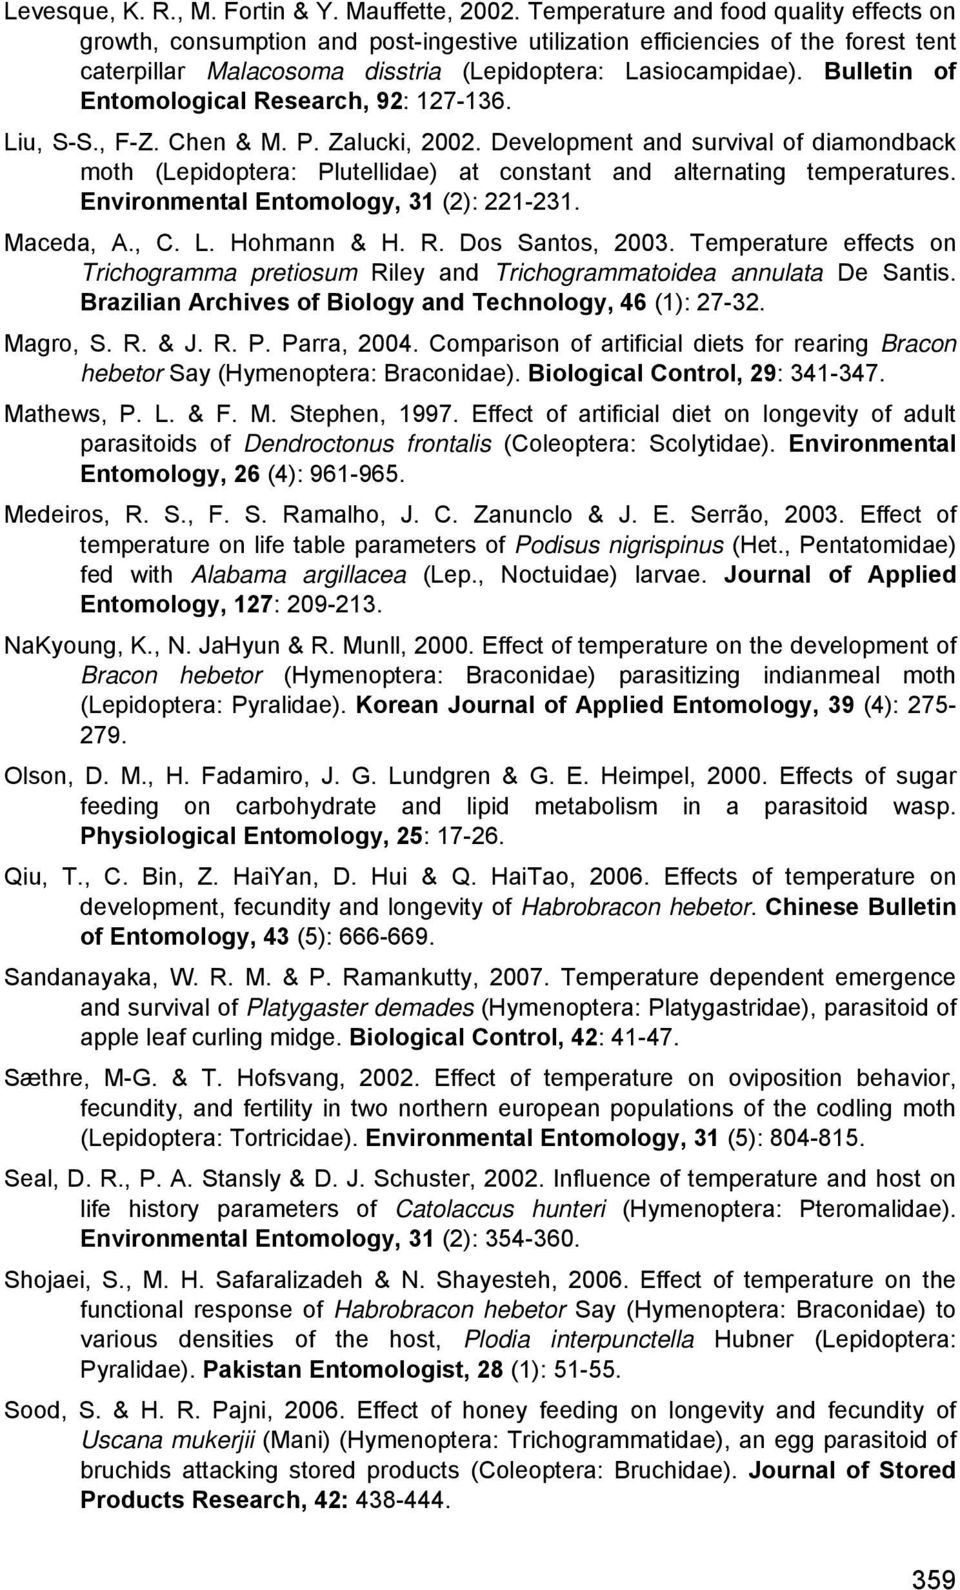 Bulletin of Entomologicl Reserch, 92: 127-136. Liu, S-S., F-Z. Chen & M. P. Zlucki, 2002. Development nd survivl of dimondck moth (Lepidopter: Plutellide) t constnt nd lternting tempertures.